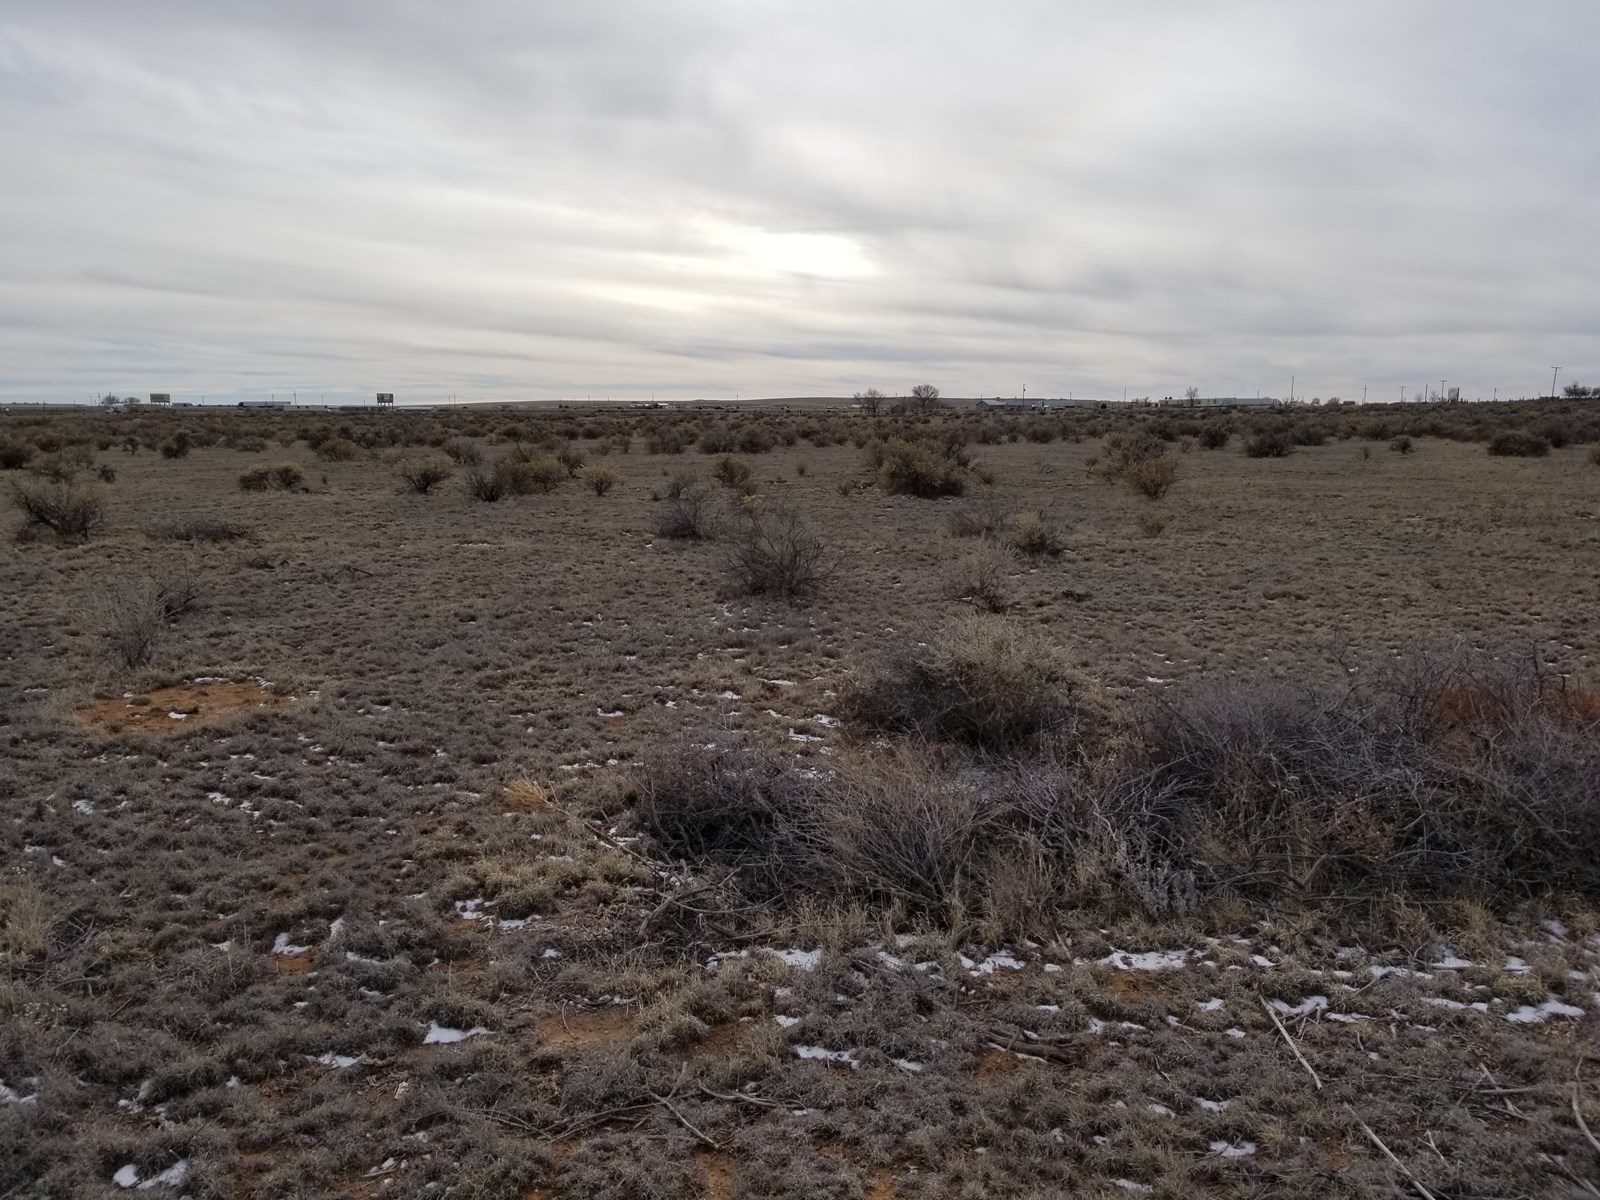 Moriarty NM Home Site Acreage For Sale Shiloh Rd